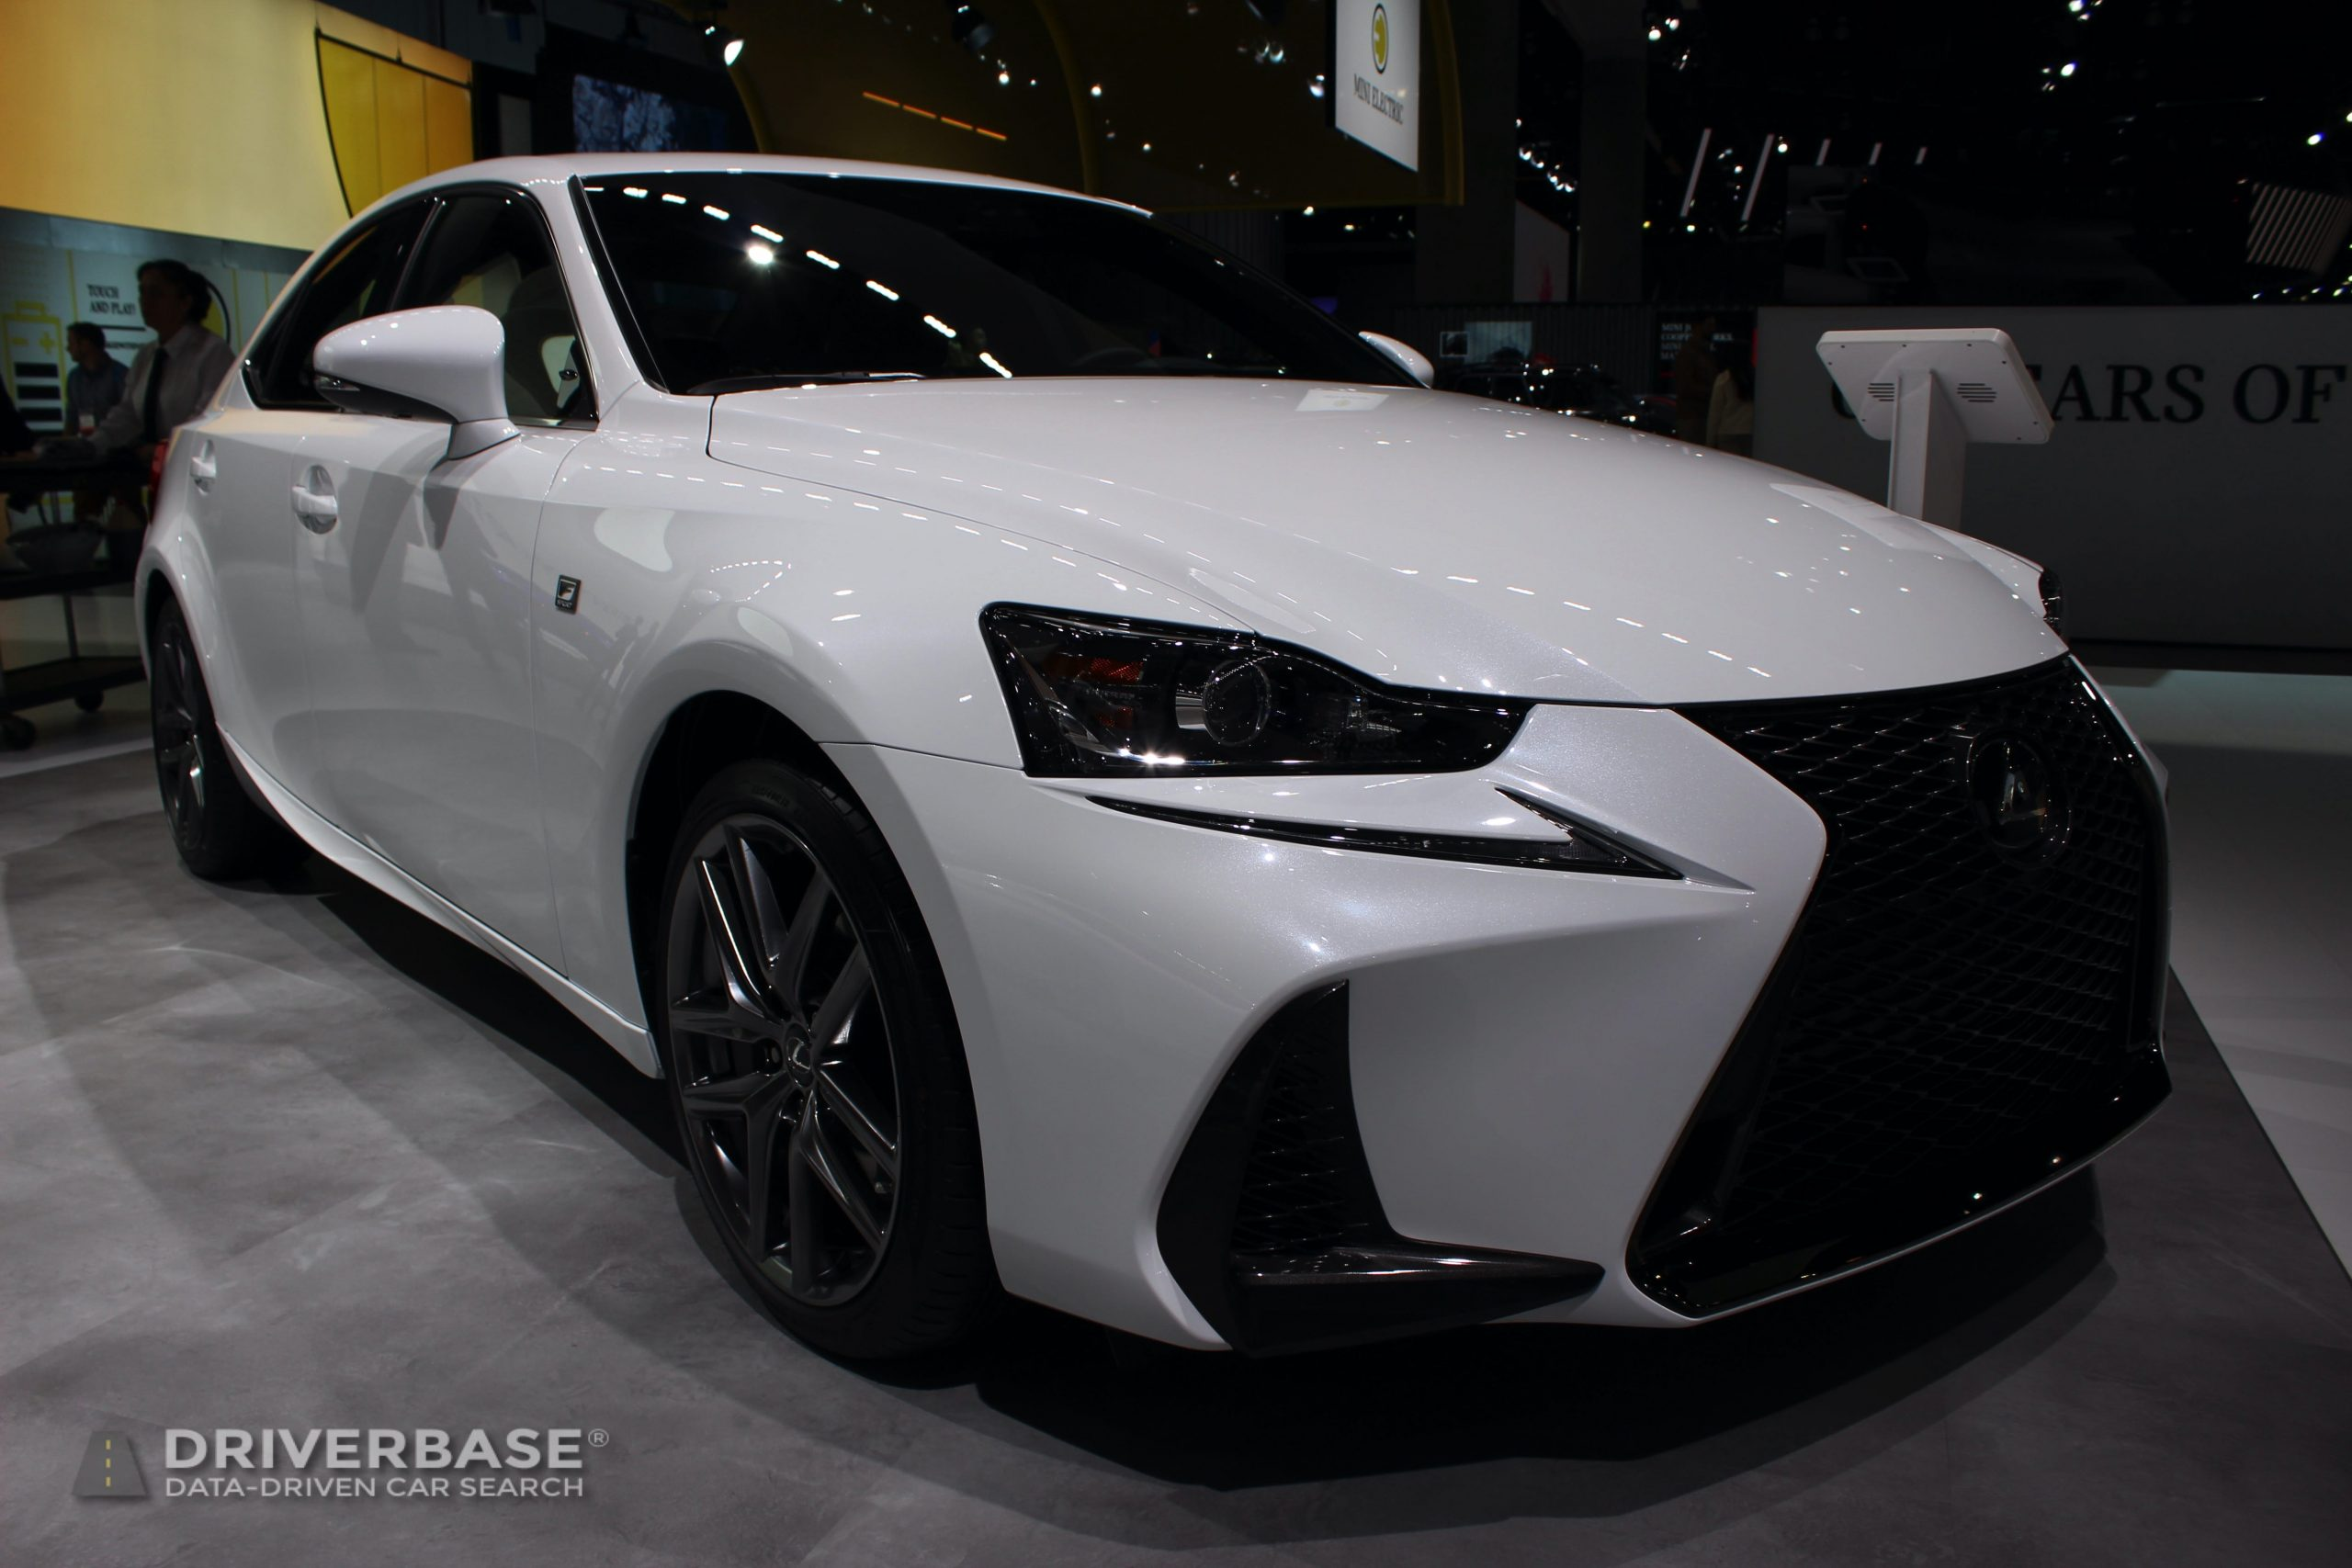 2020 Lexus IS 350 F Sport at the 2019 Los Angeles Auto Show